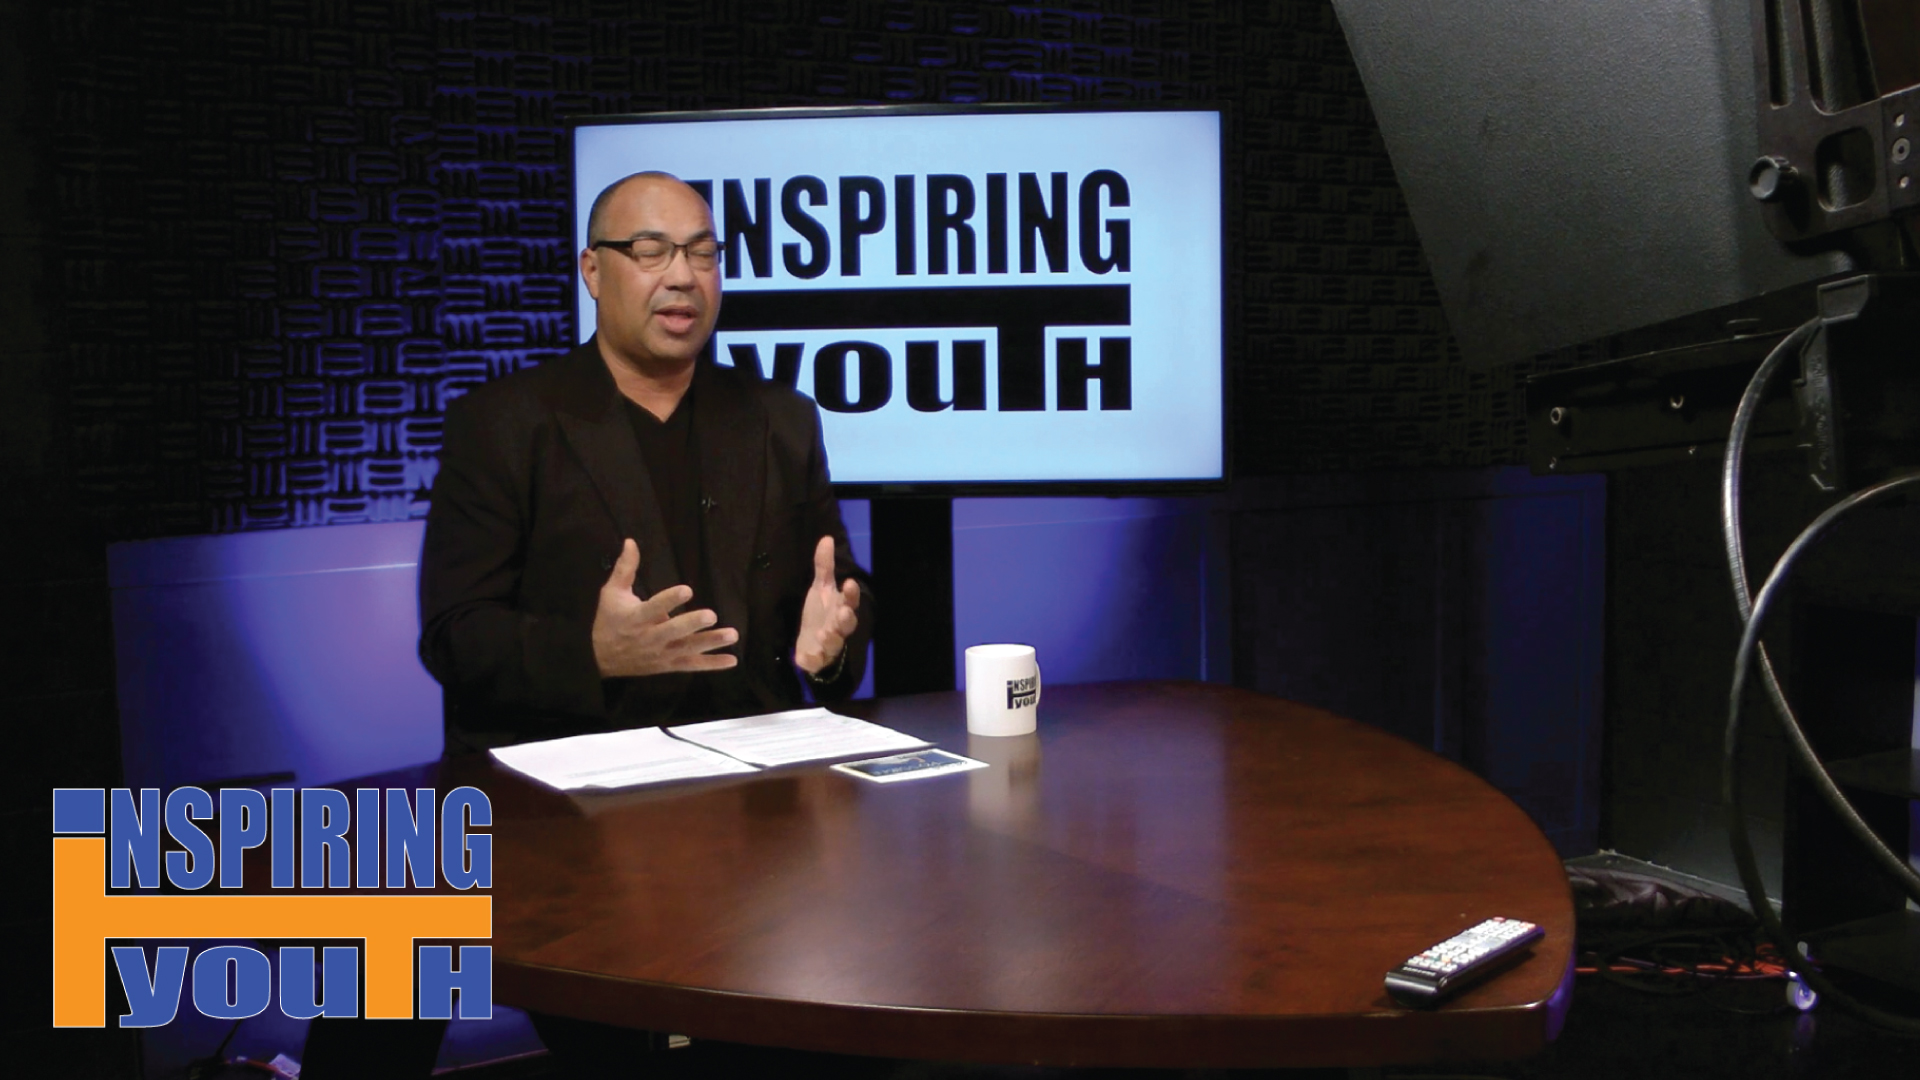 Bruce Outridge on Inspiring Youth